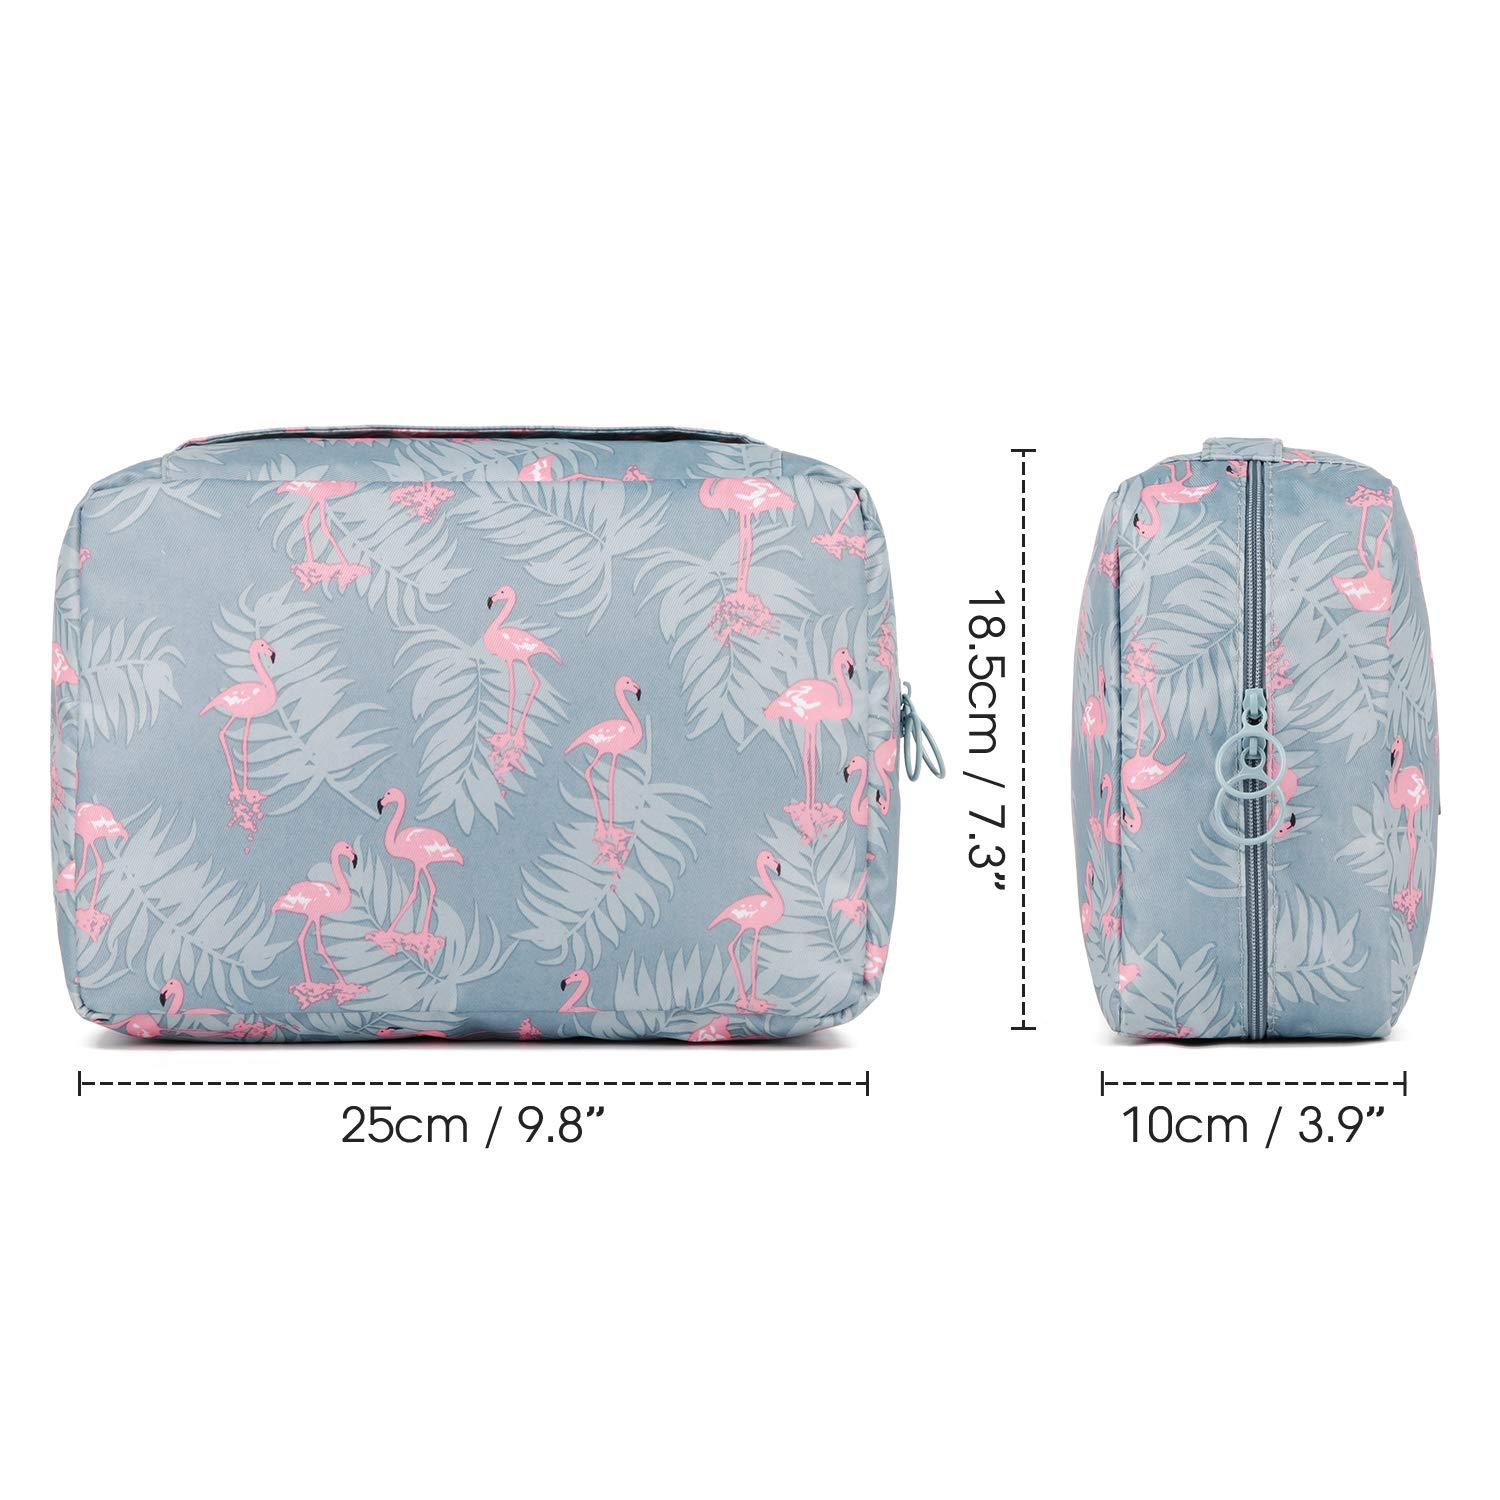 Flamingo Travel Toiletry Bag, Waterproof Hanging Cosmetic Bag Organizer for Women